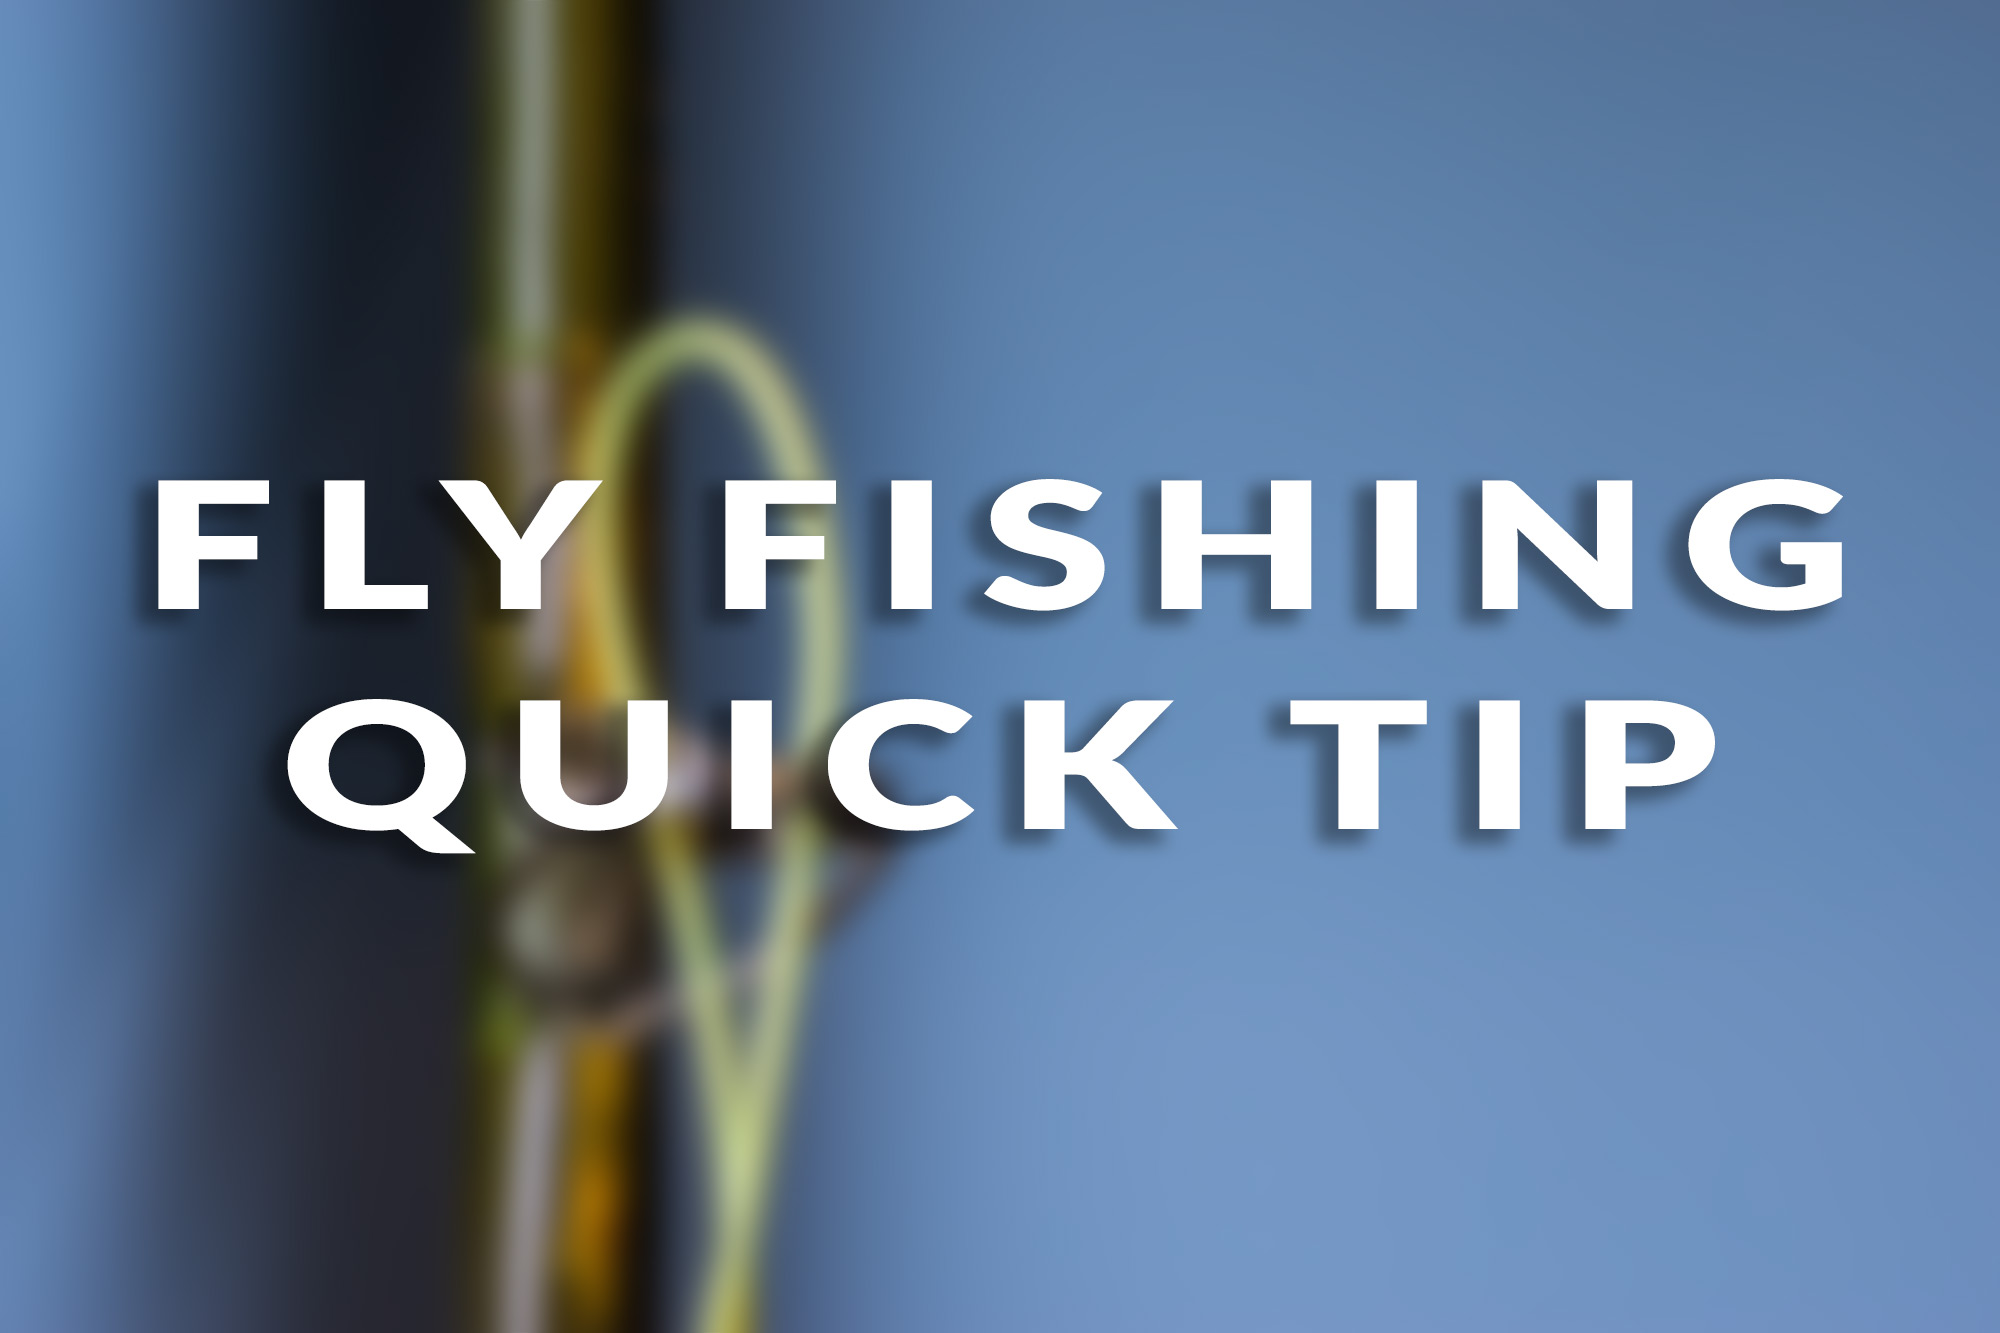 Fly Fishing Quick Tip - String Fly Line-The Fly Fishing Basics